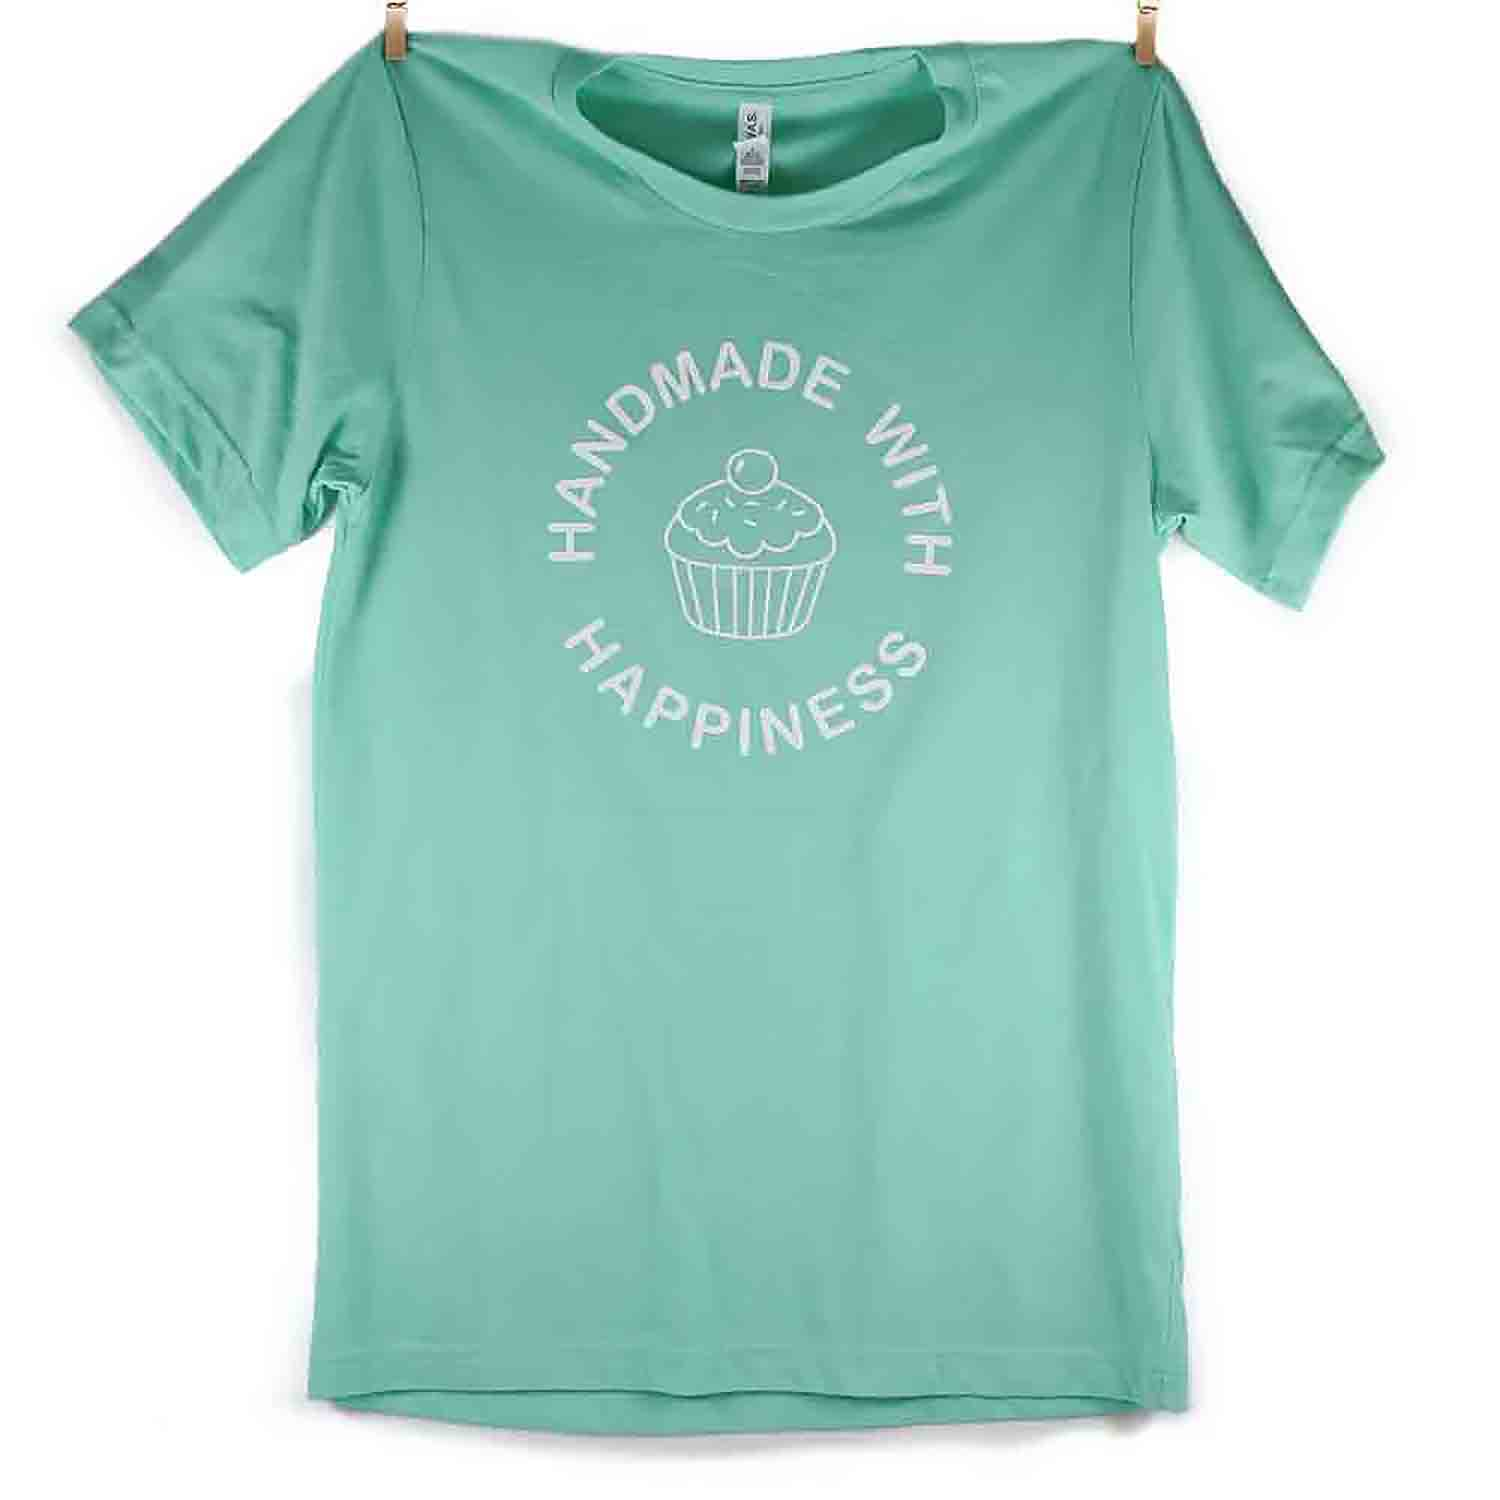 Mint Handmade with Happiness T-Shirt - Large